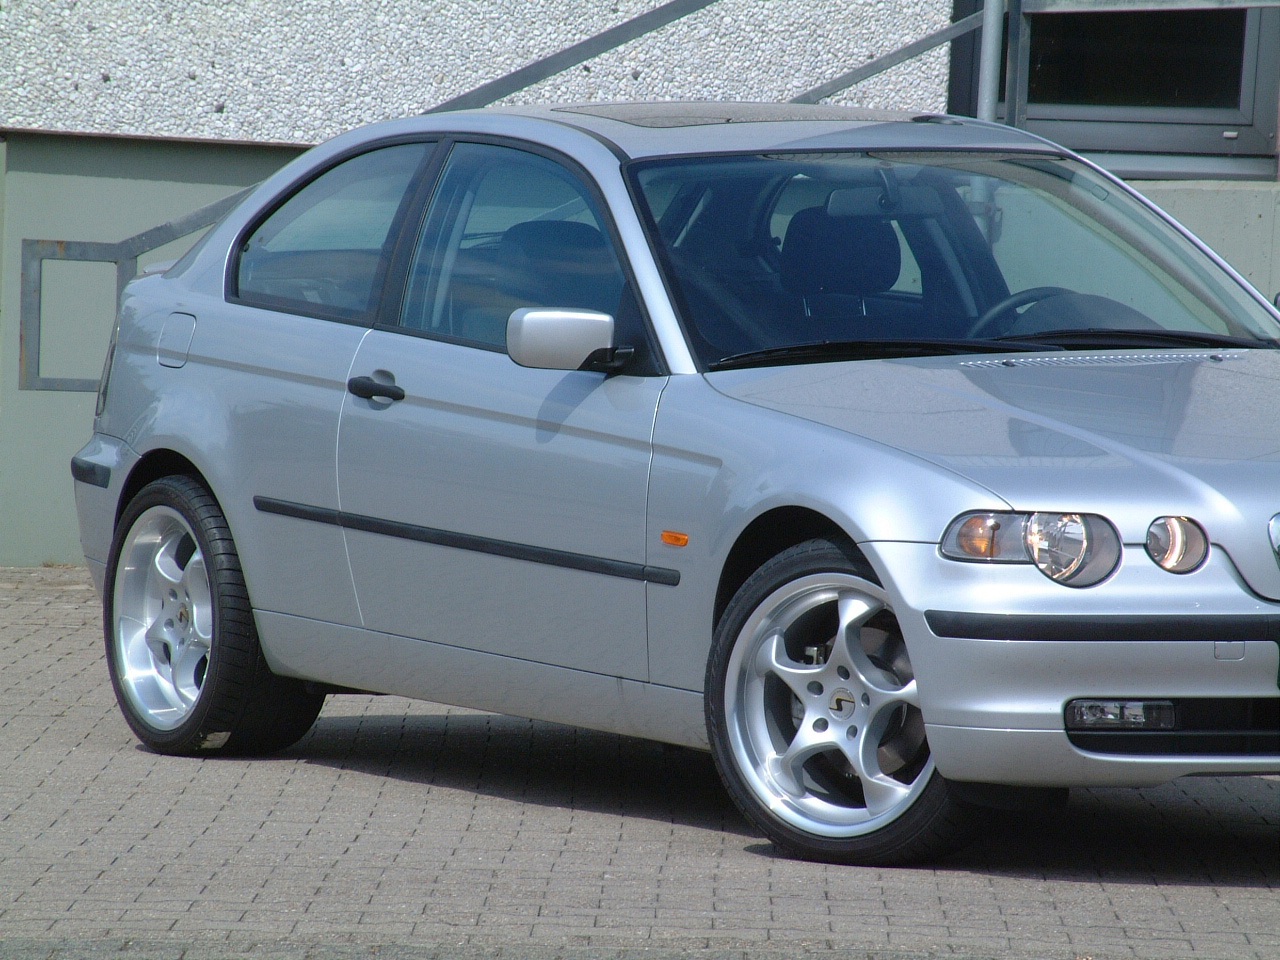 Space am BMW Compact groß